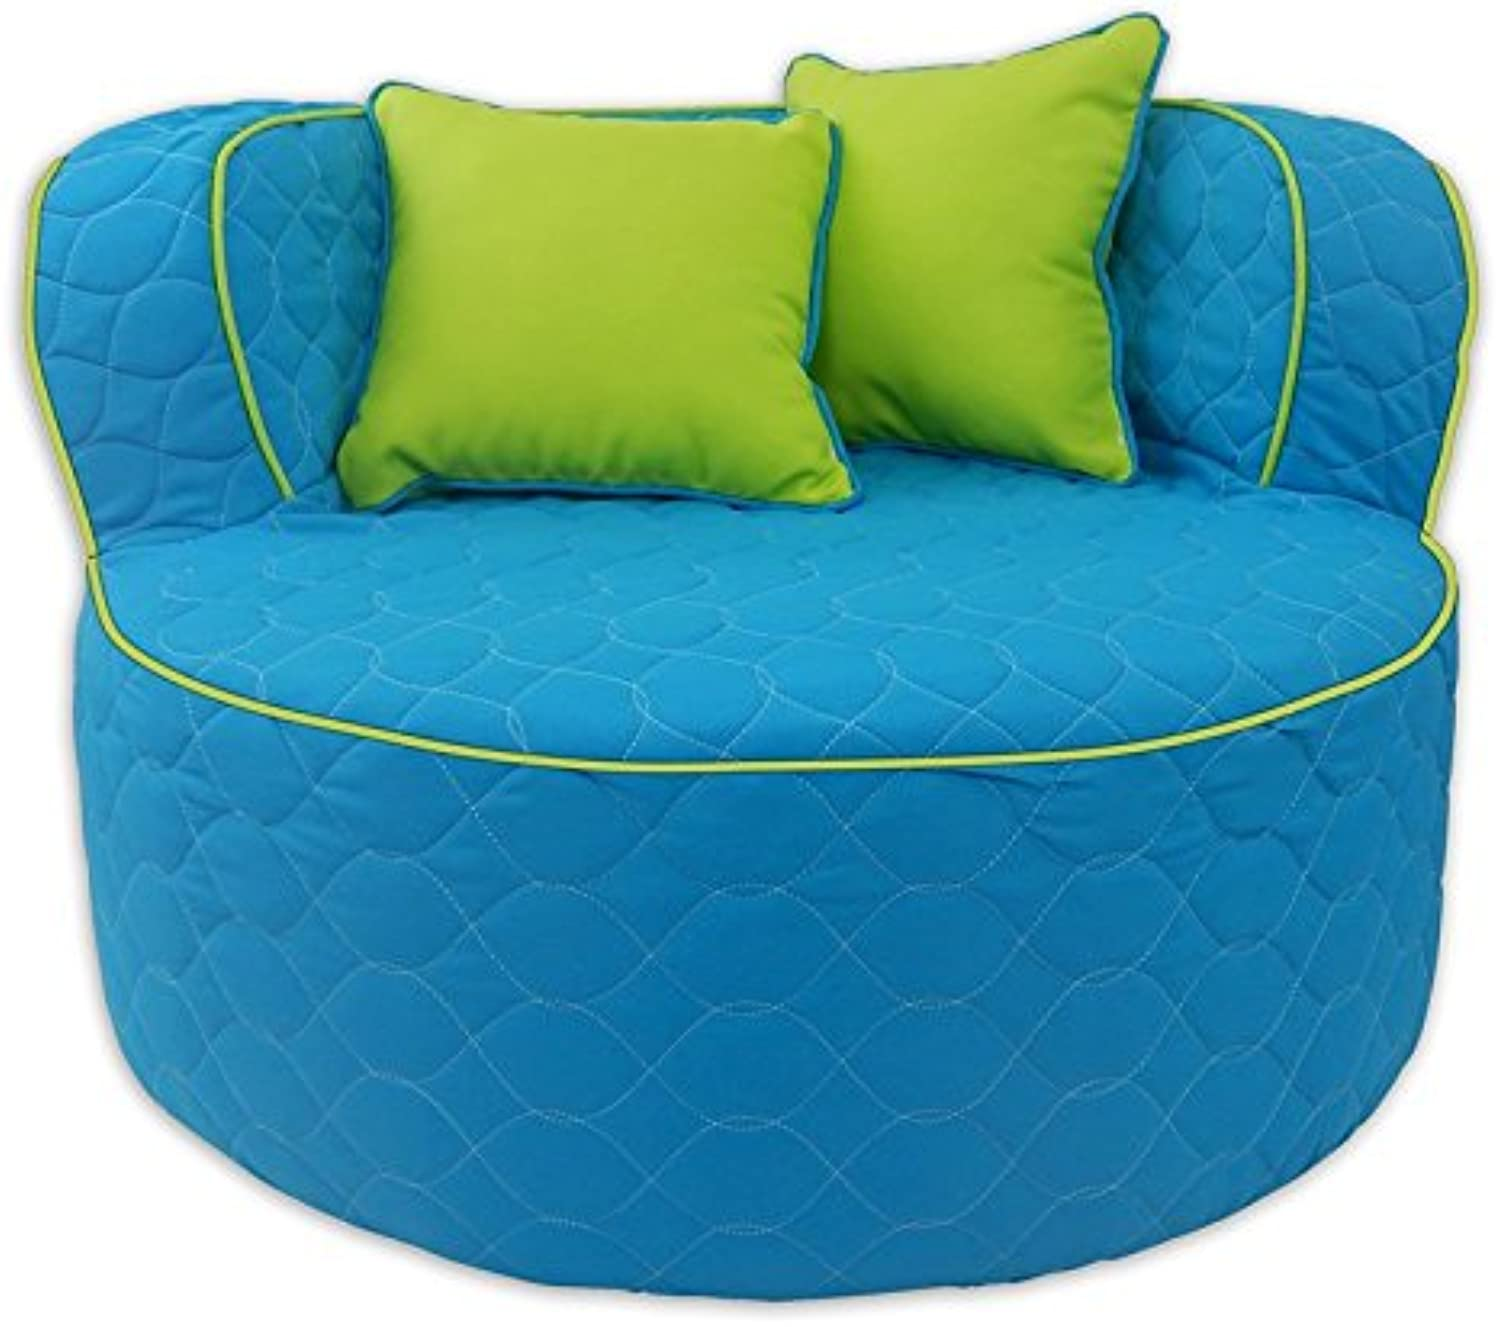 Fun Furnishings 95722 Throw Back Chair, Aqua Lime